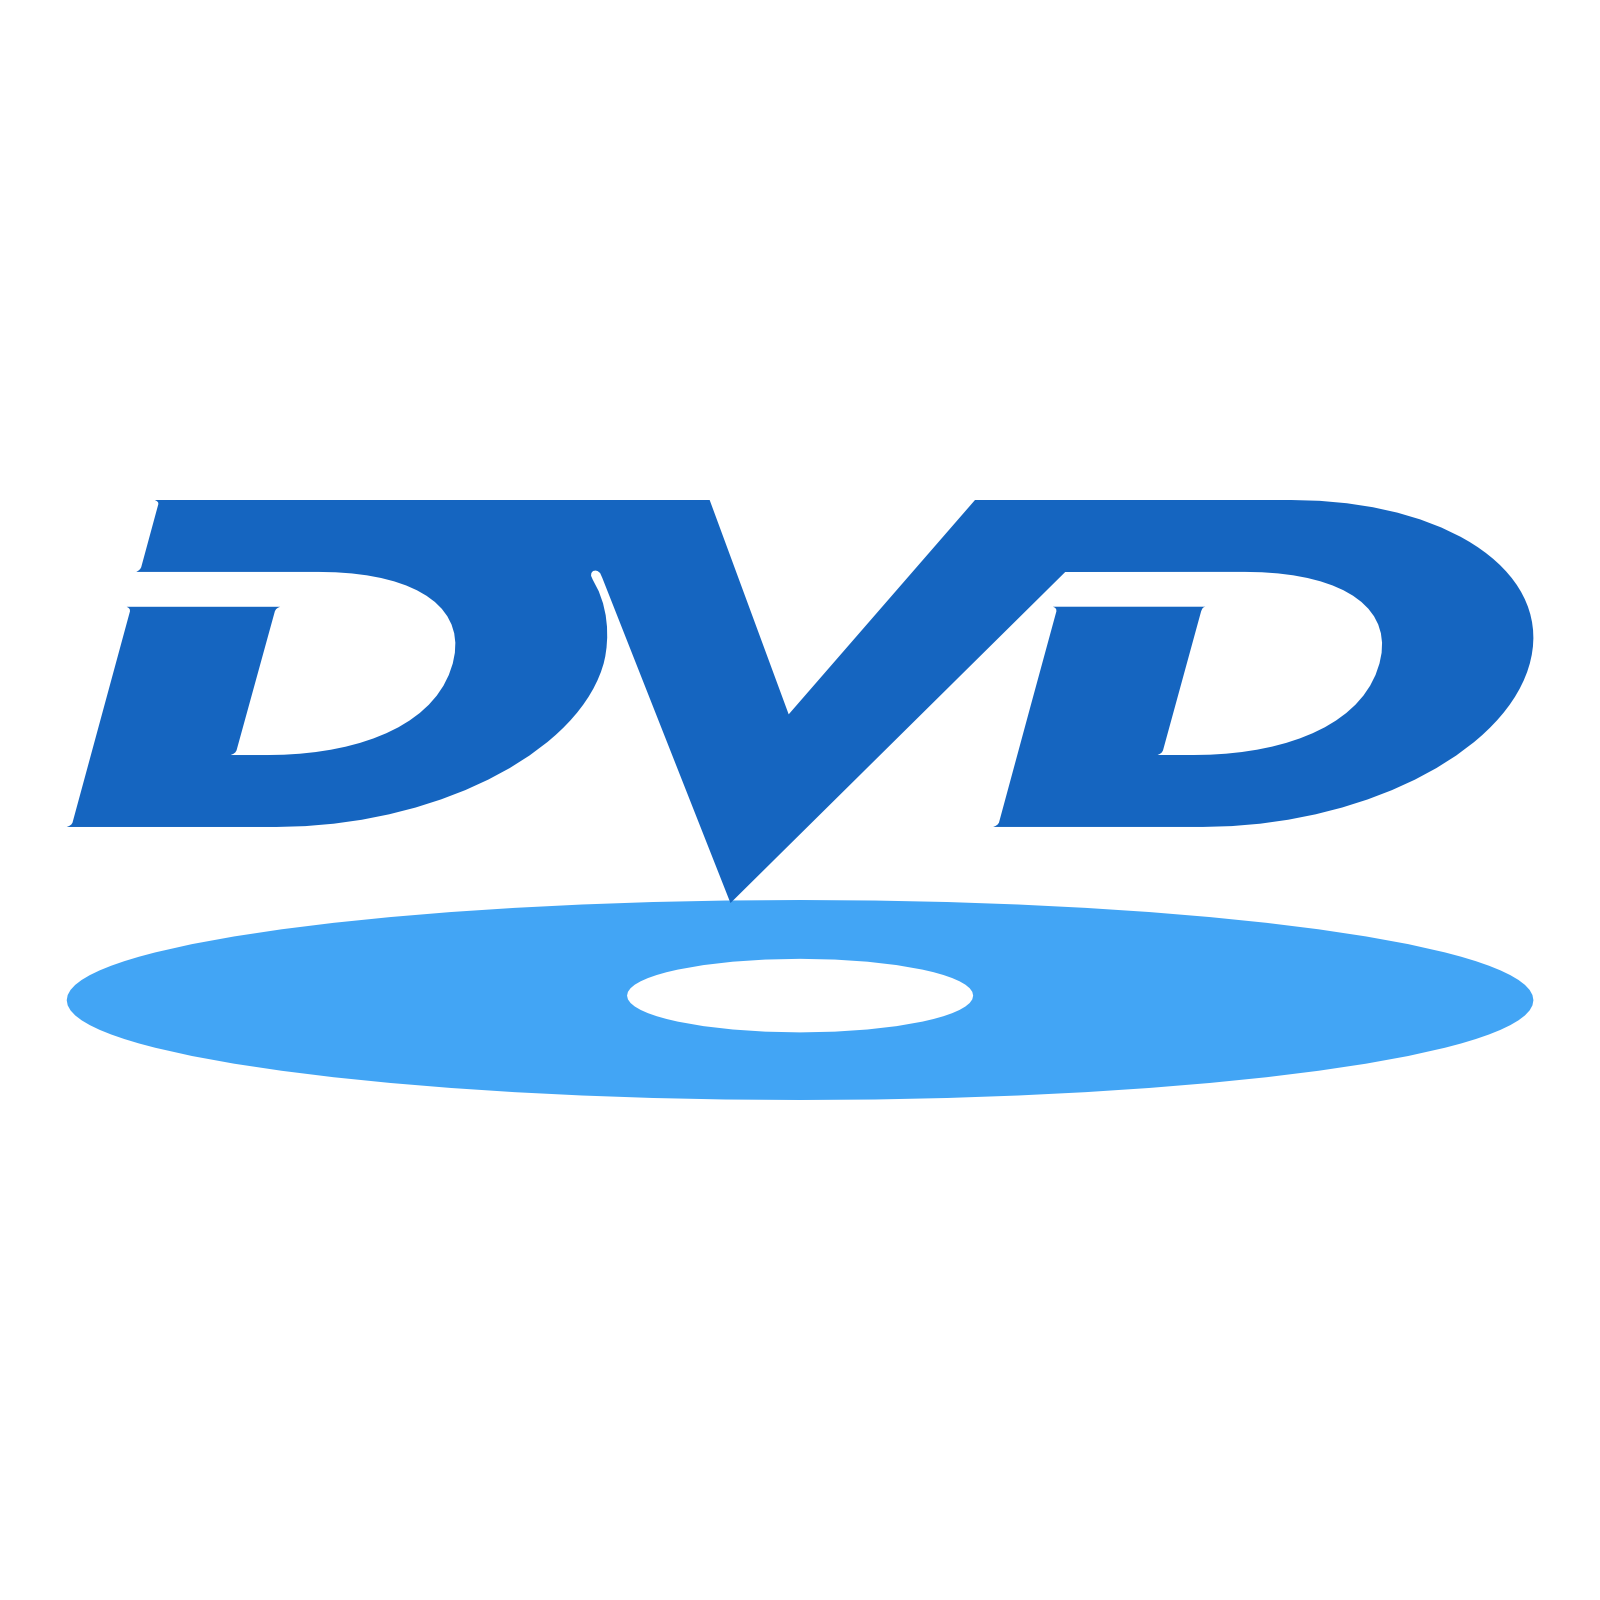 DVD Logo Icon - Free Download at Icons8